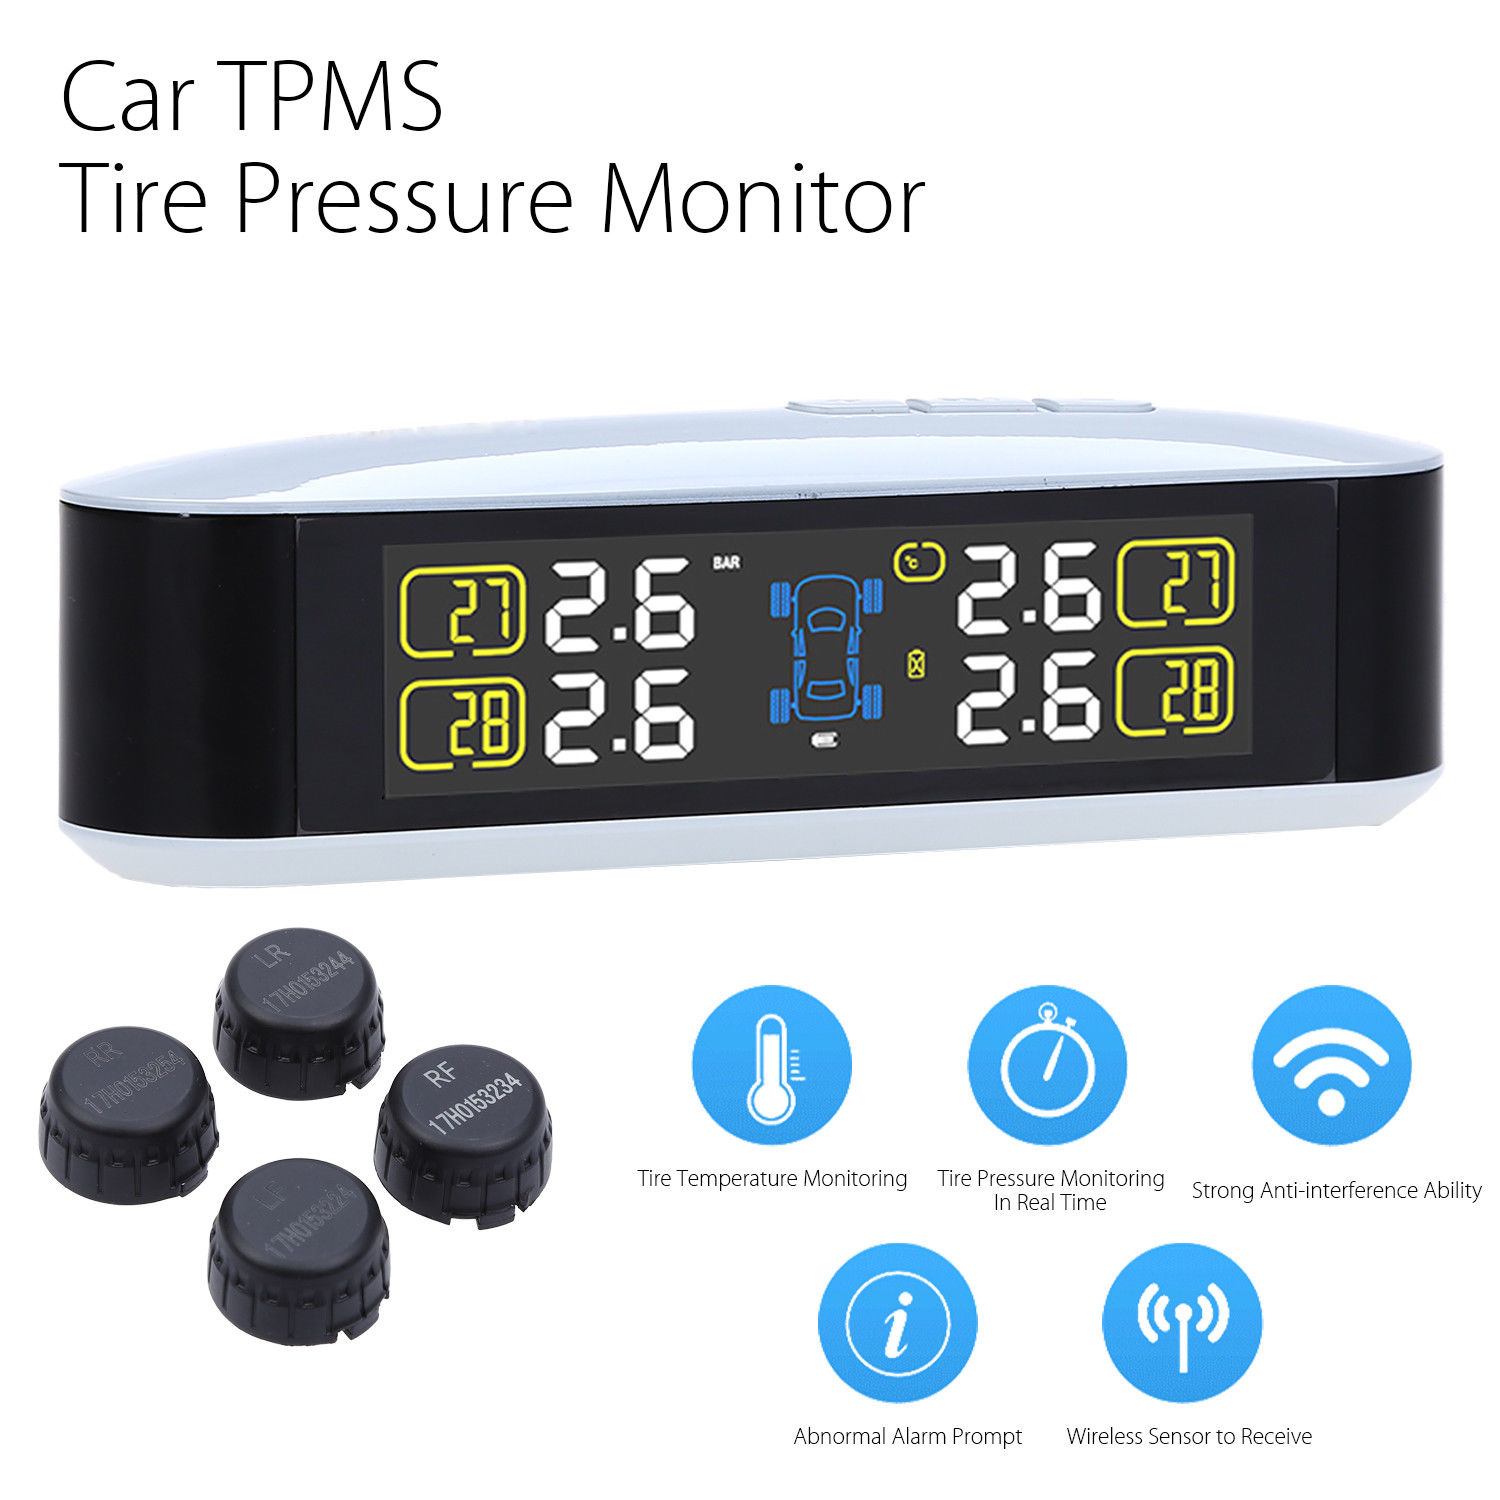 Car TPMS Tire Pressure Wireless Monitoring Temperature System PSI BAR USB Alarm 4 External Sensors Auto Tire Pressure Alarm LCD цены онлайн